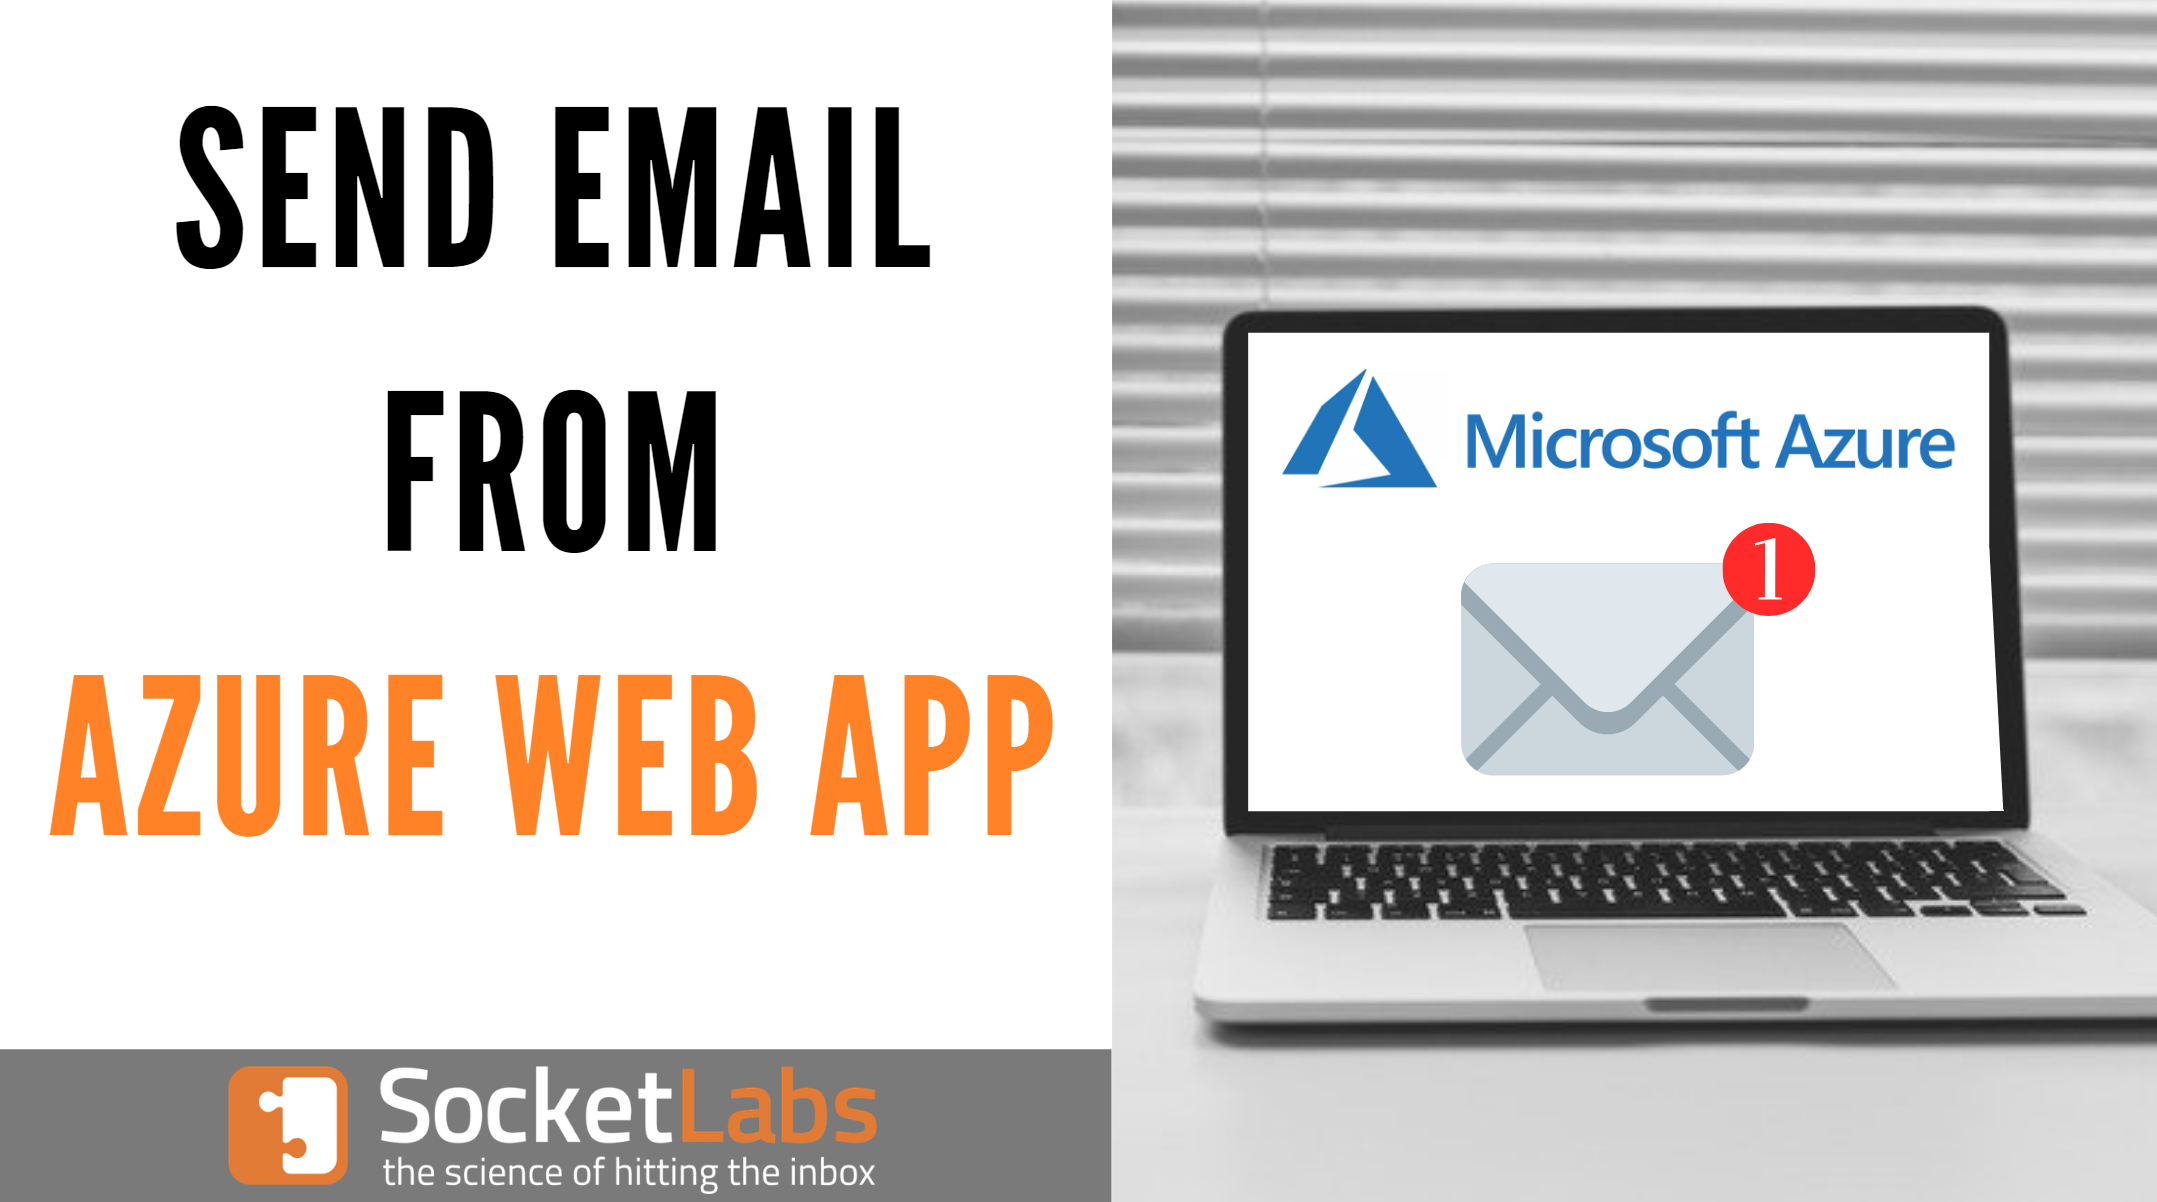 How To Send Email From an Azure Web App